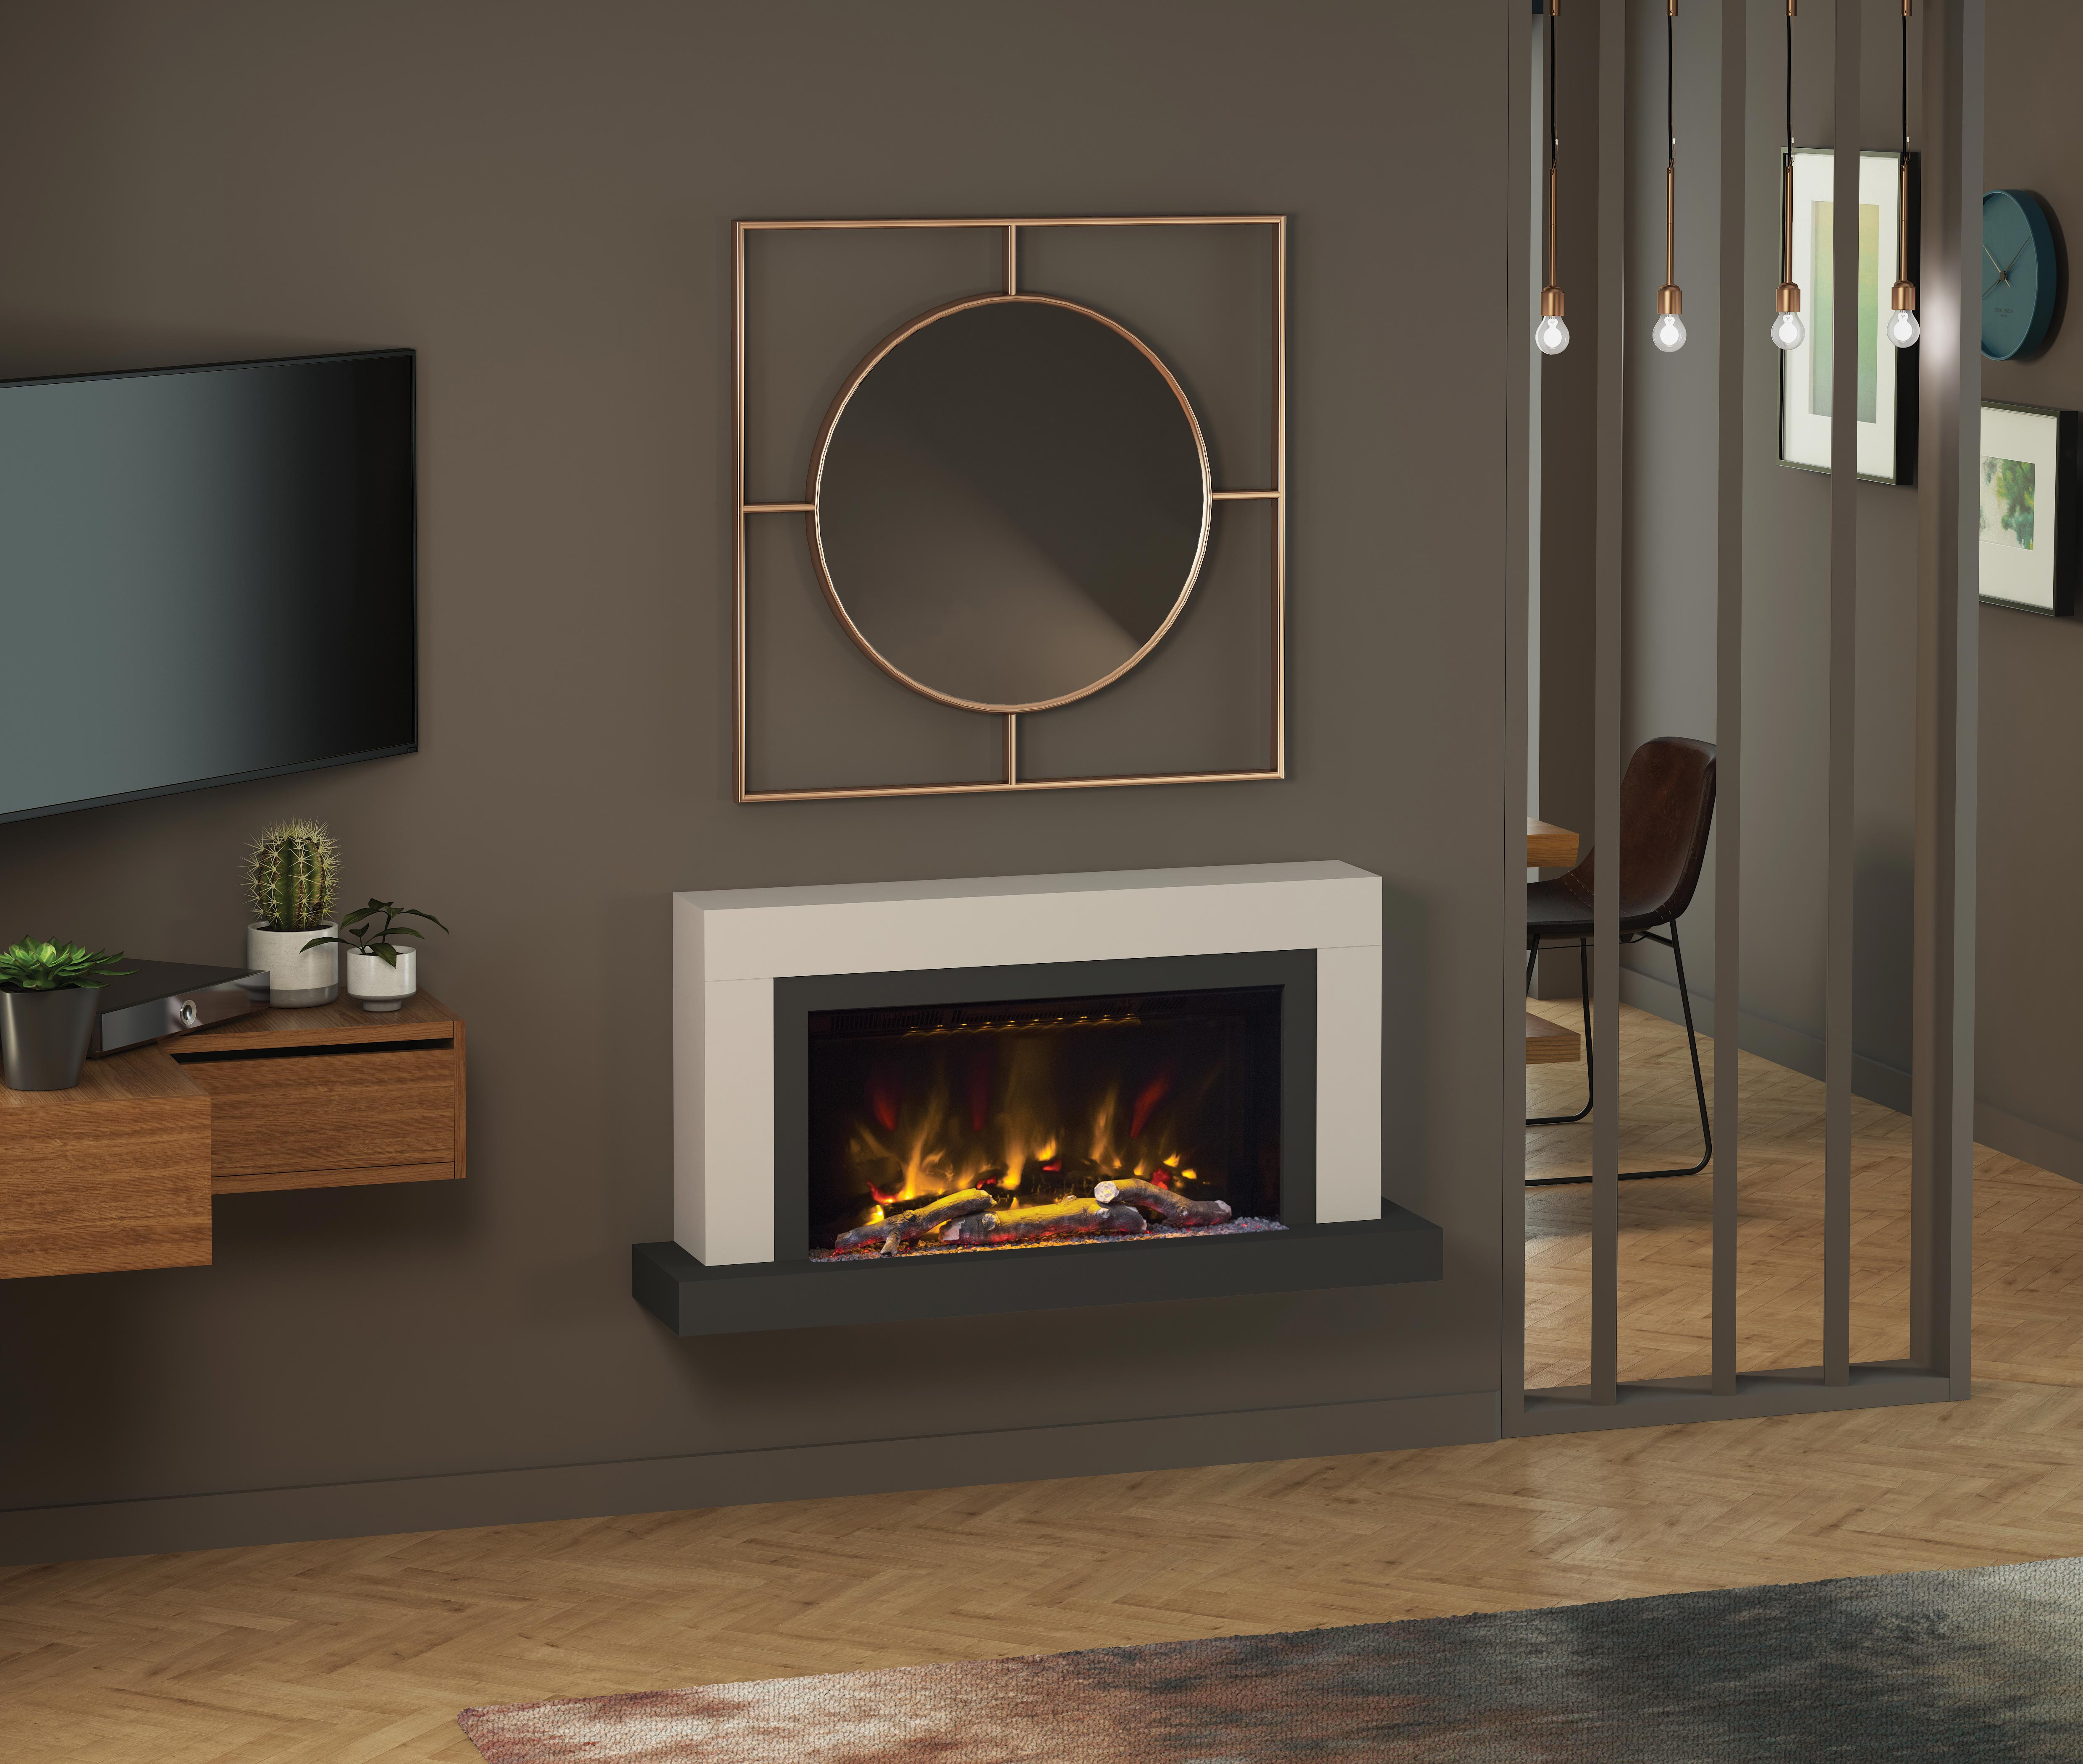 Wall Mounted Electric Fireplace Suite With Led Electric Fire Pryzm Vardo 47 Electric Fire With Led Vari Colour Flame The Gas Company